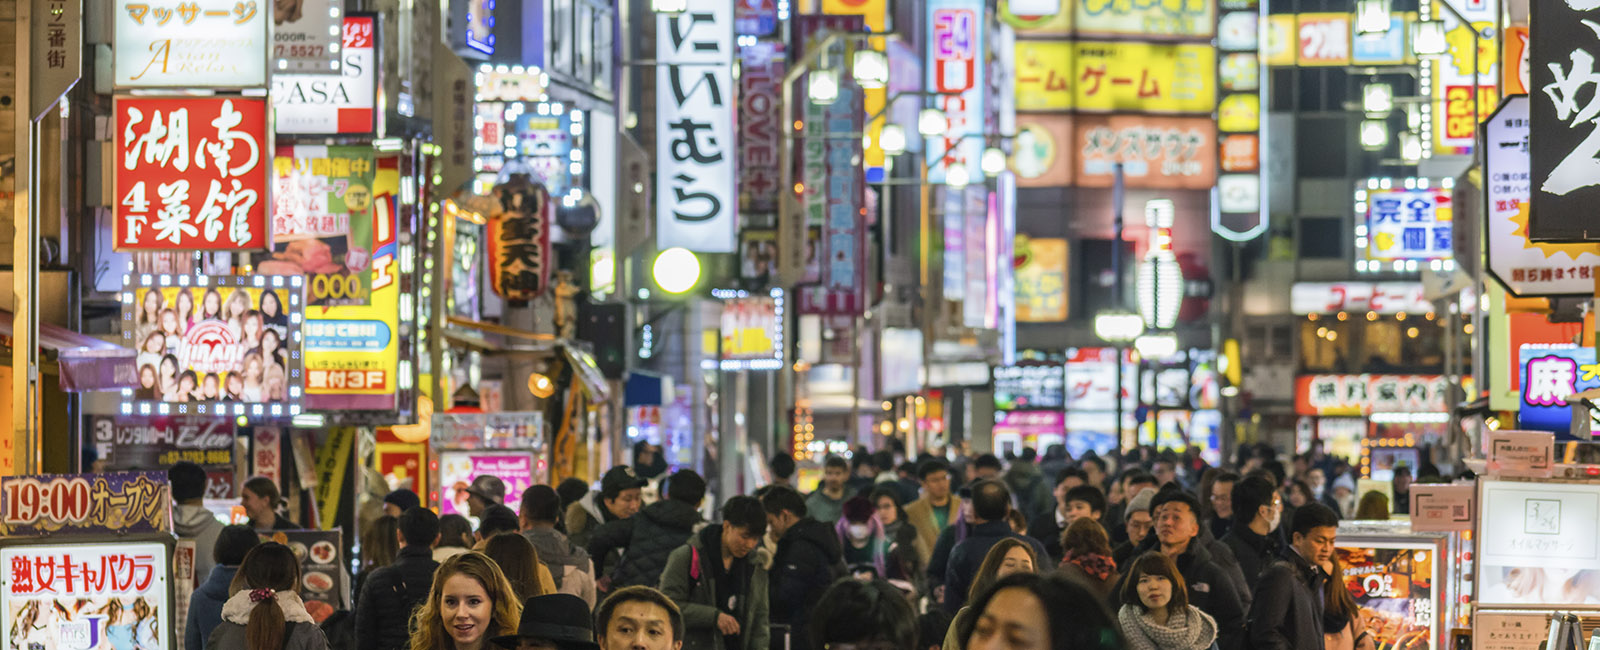 Japan gives its citizens until the age of 22 to decide their country of loyalty